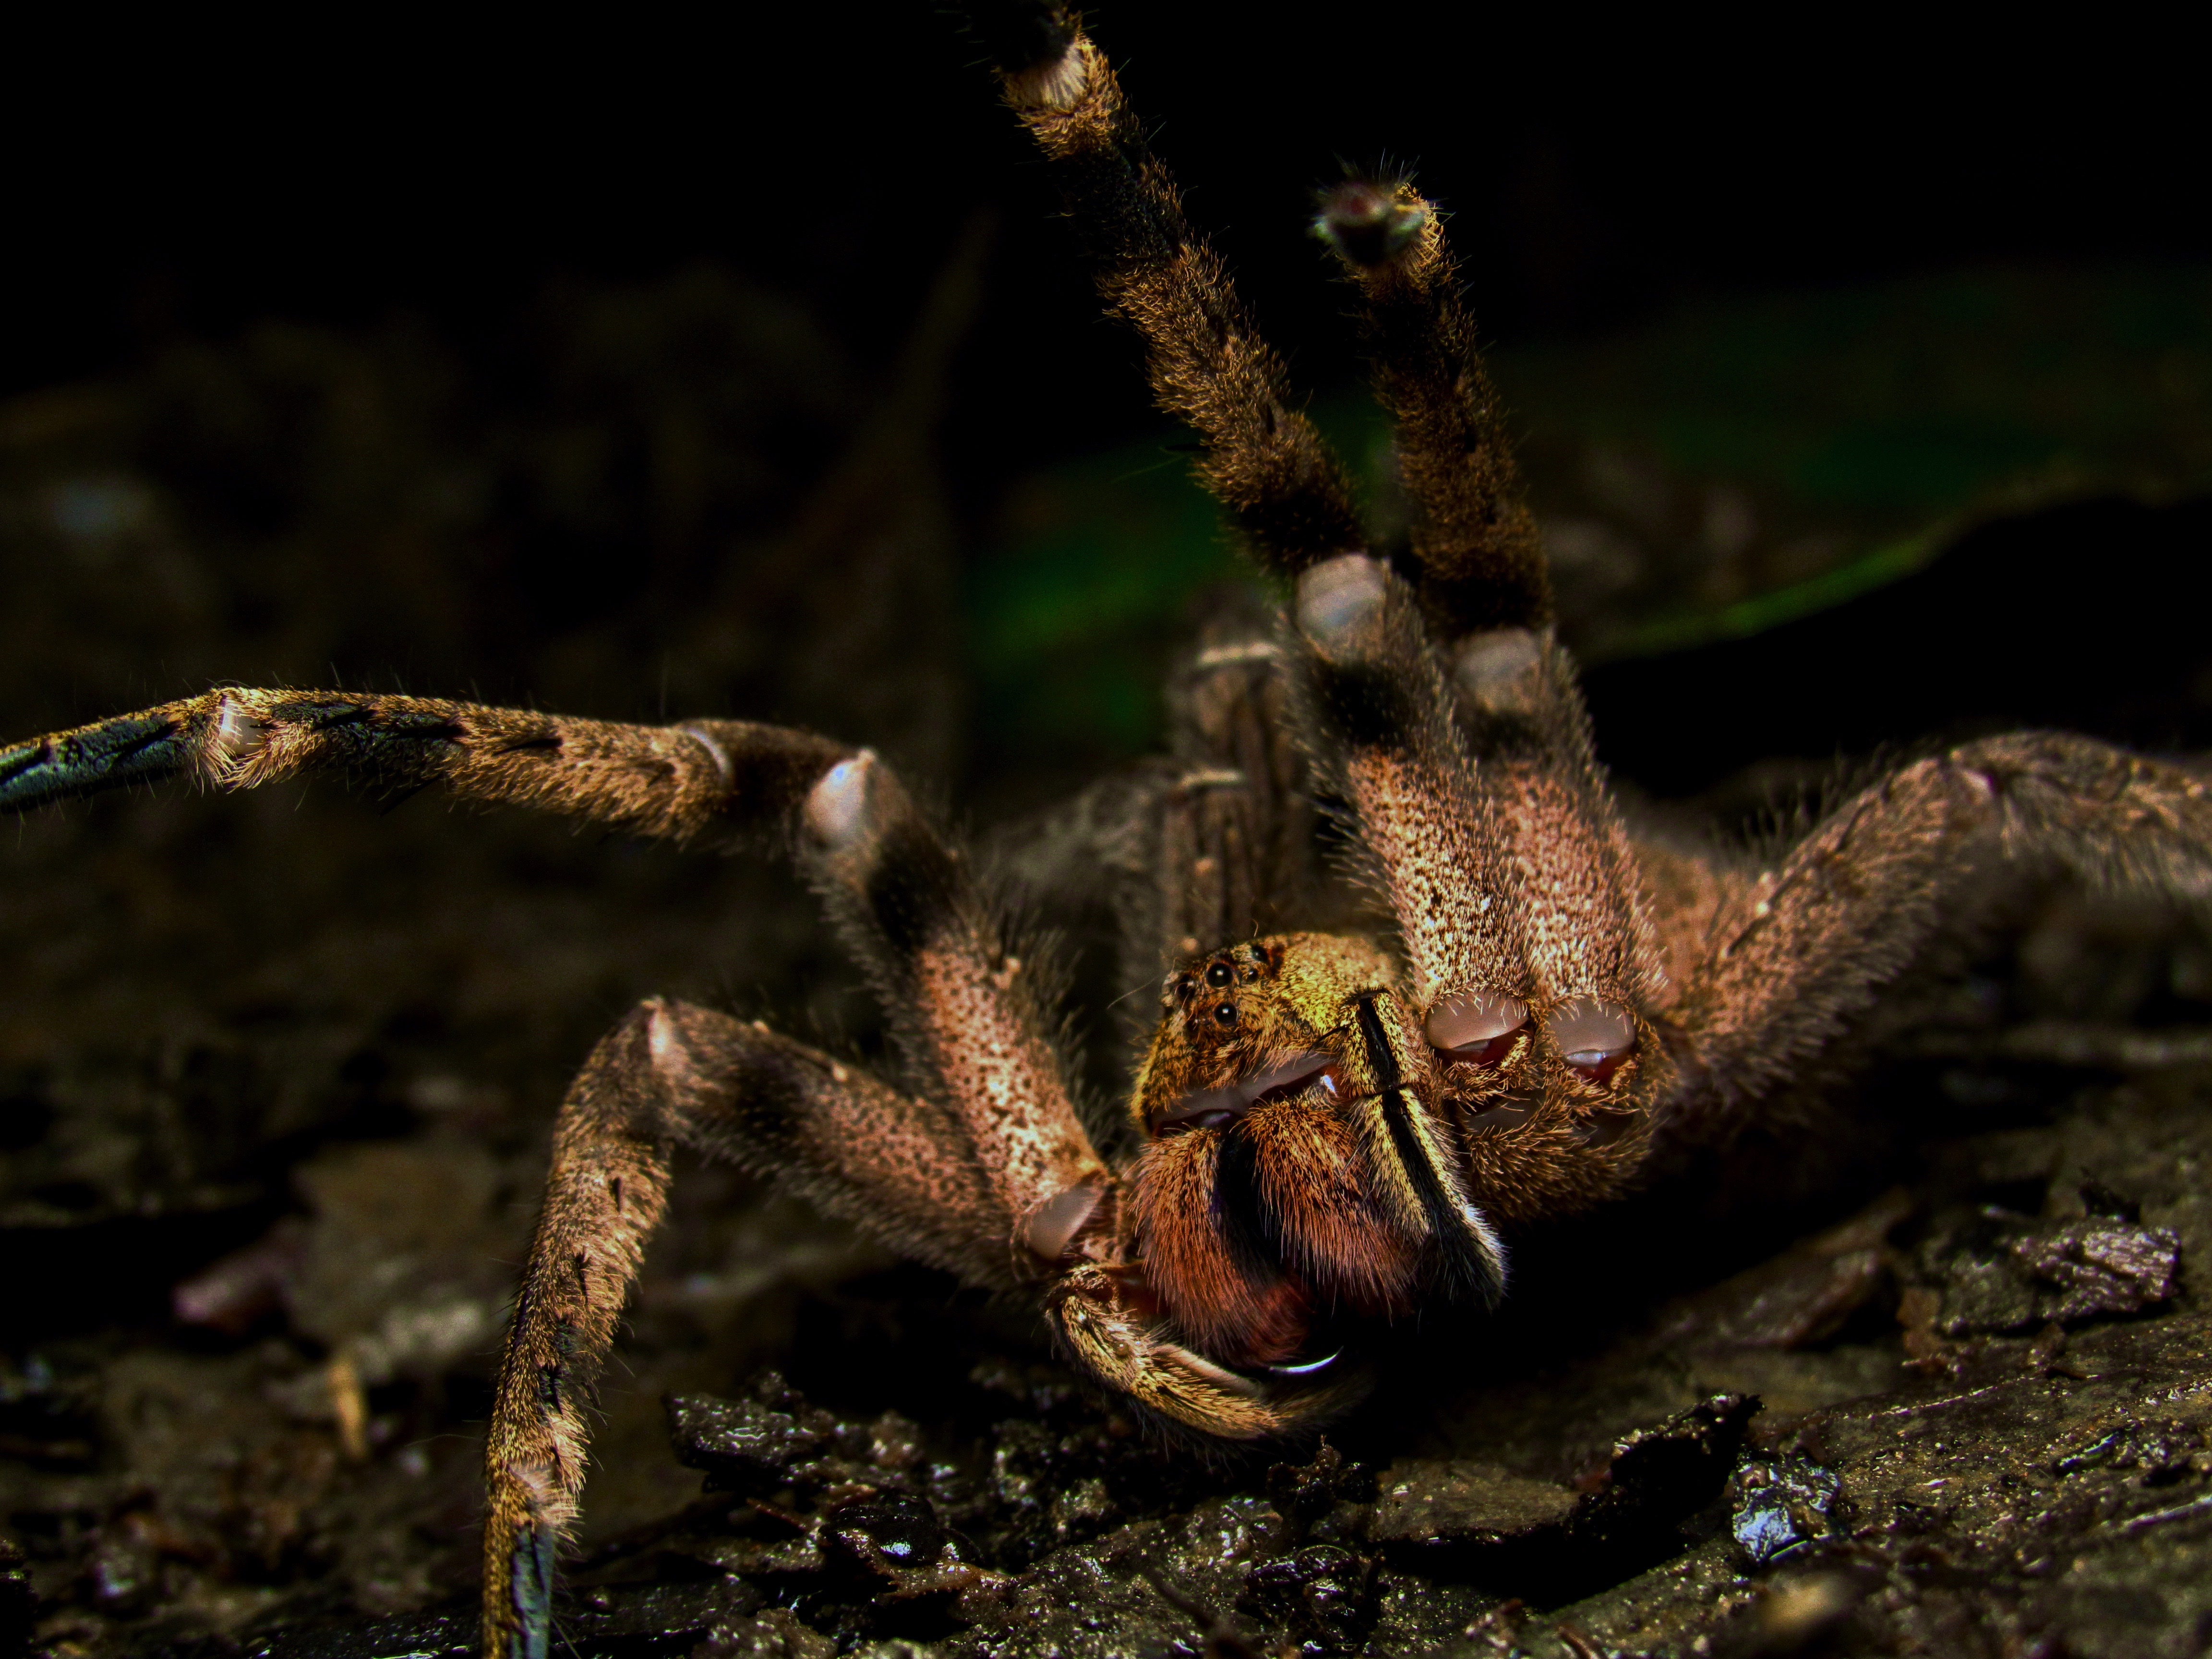 Threat display of a Brazilian wandering spider (Phoneutria boliviensis) from Tárcoles, Costa Rica. A ctenid with medically significant venom.